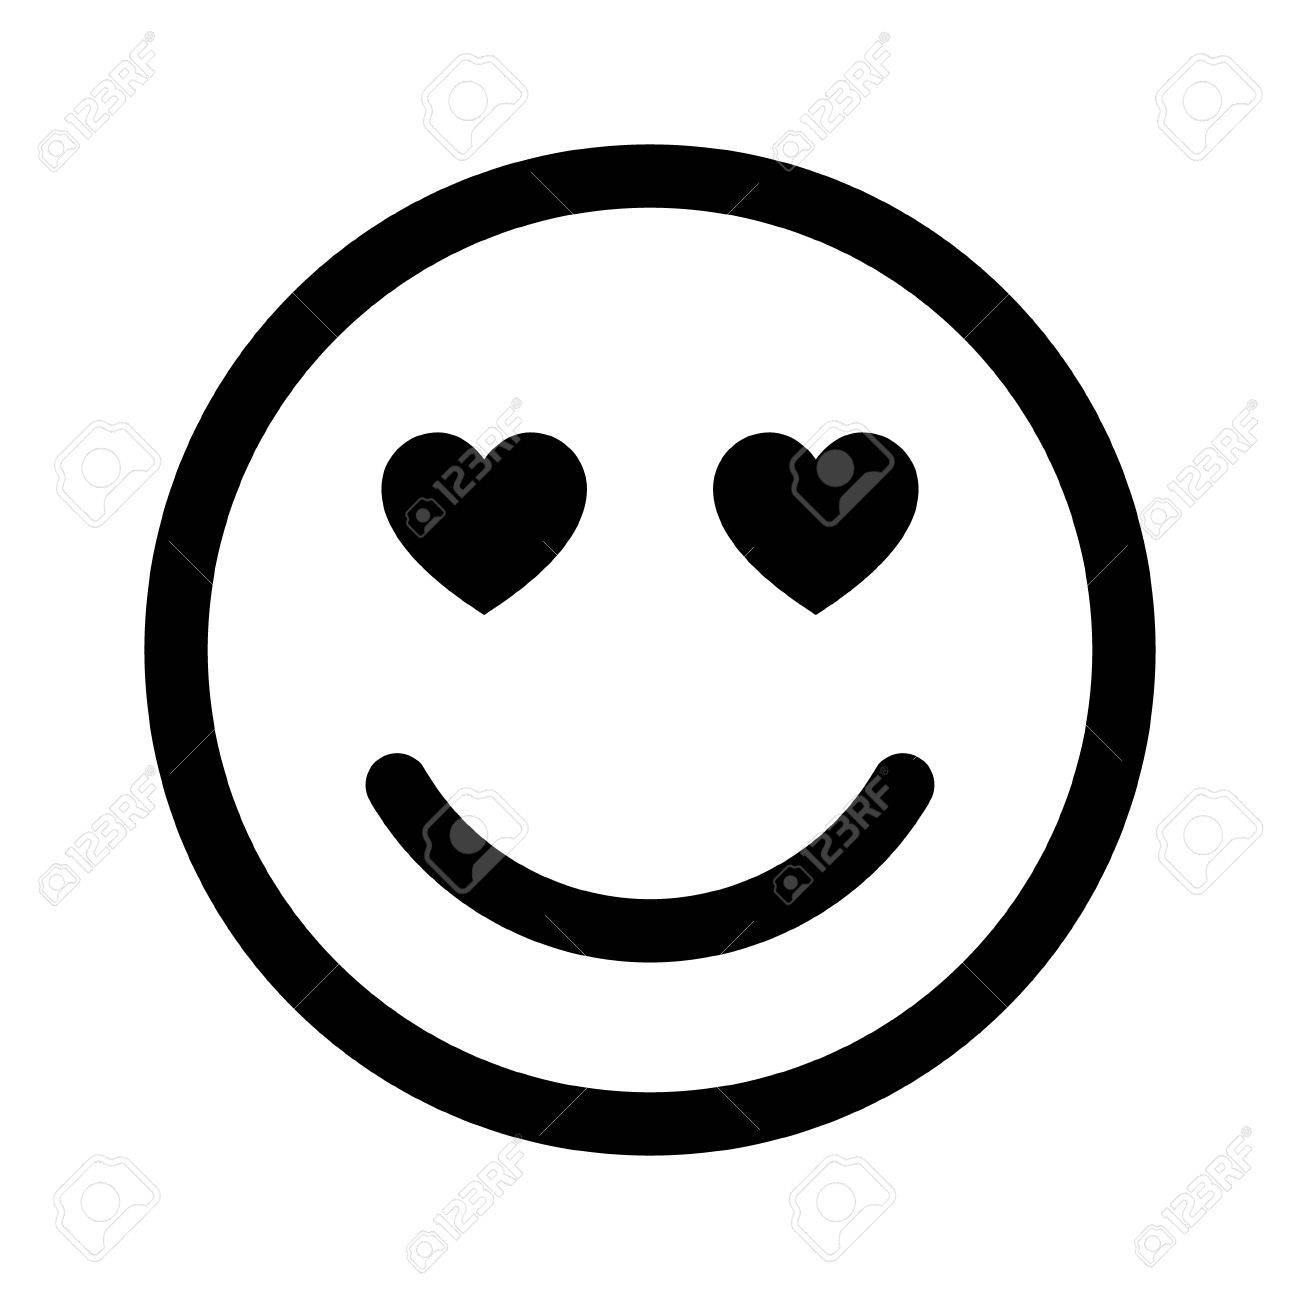 smiley face in love line art icon for apps and websites royalty free rh 123rf com vector smiley face with thumbs up vector smiley face with thumbs up